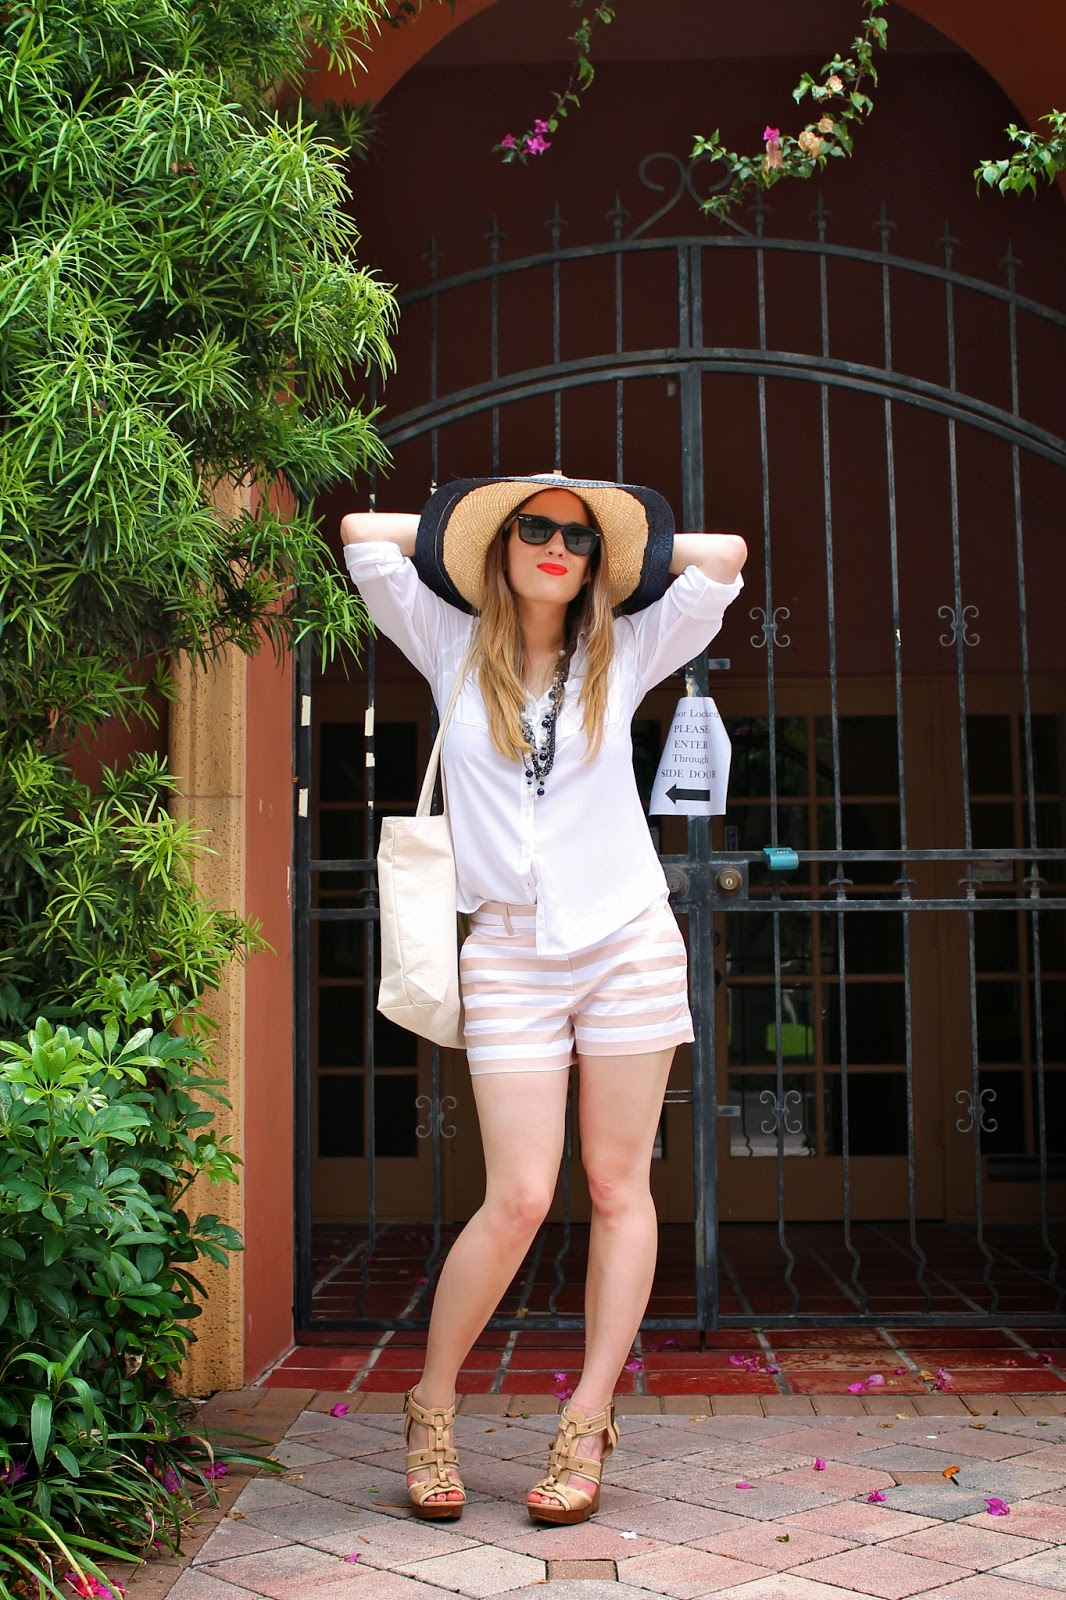 Gap, Express, Chanel, Aldo, Ray-Ban, Miami fashion blogger, fashion blog, style blog, street style, classic, stripes, sunhat, summer style, Gap Lincoln Road